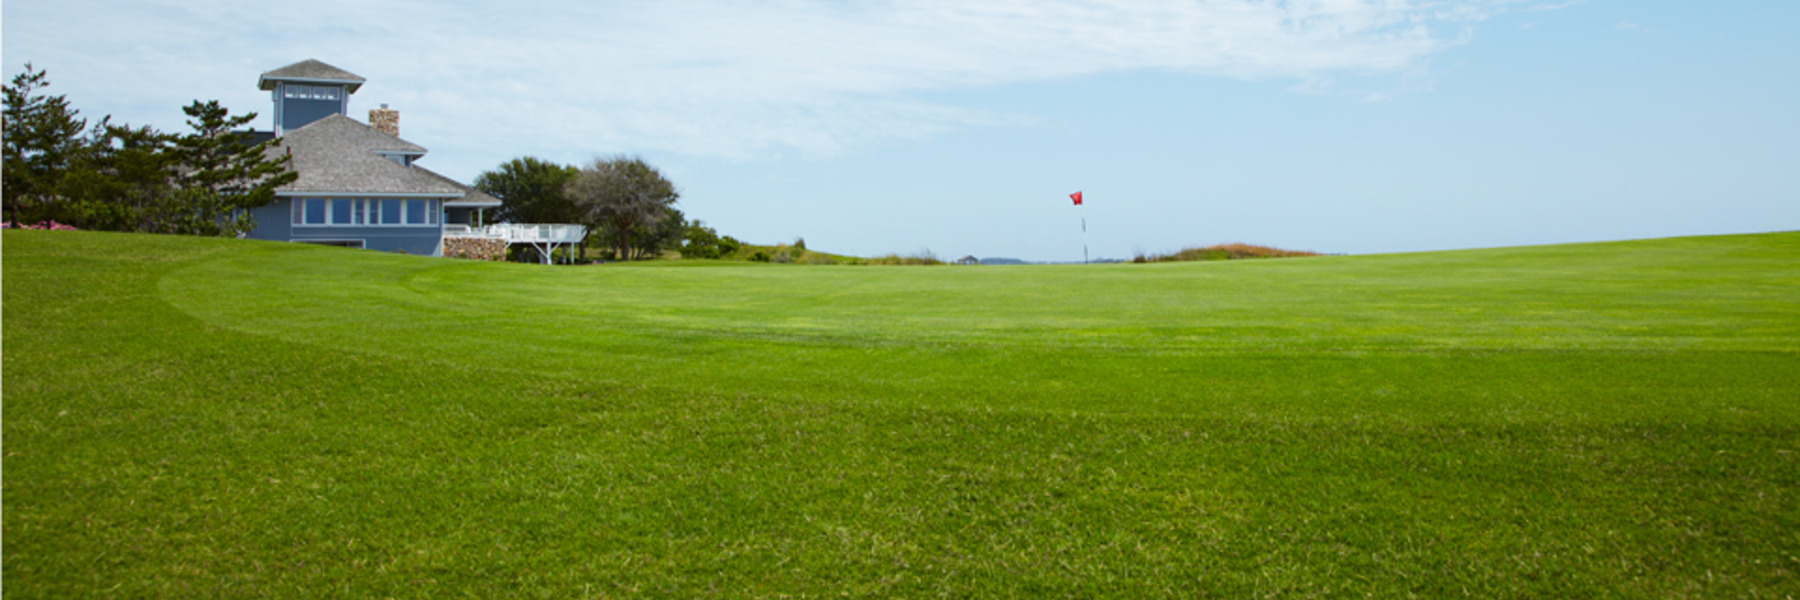 Golf Vacation Package - Outer Banks Golf - 3 Nights & 4 Rounds - For $169/person per day!